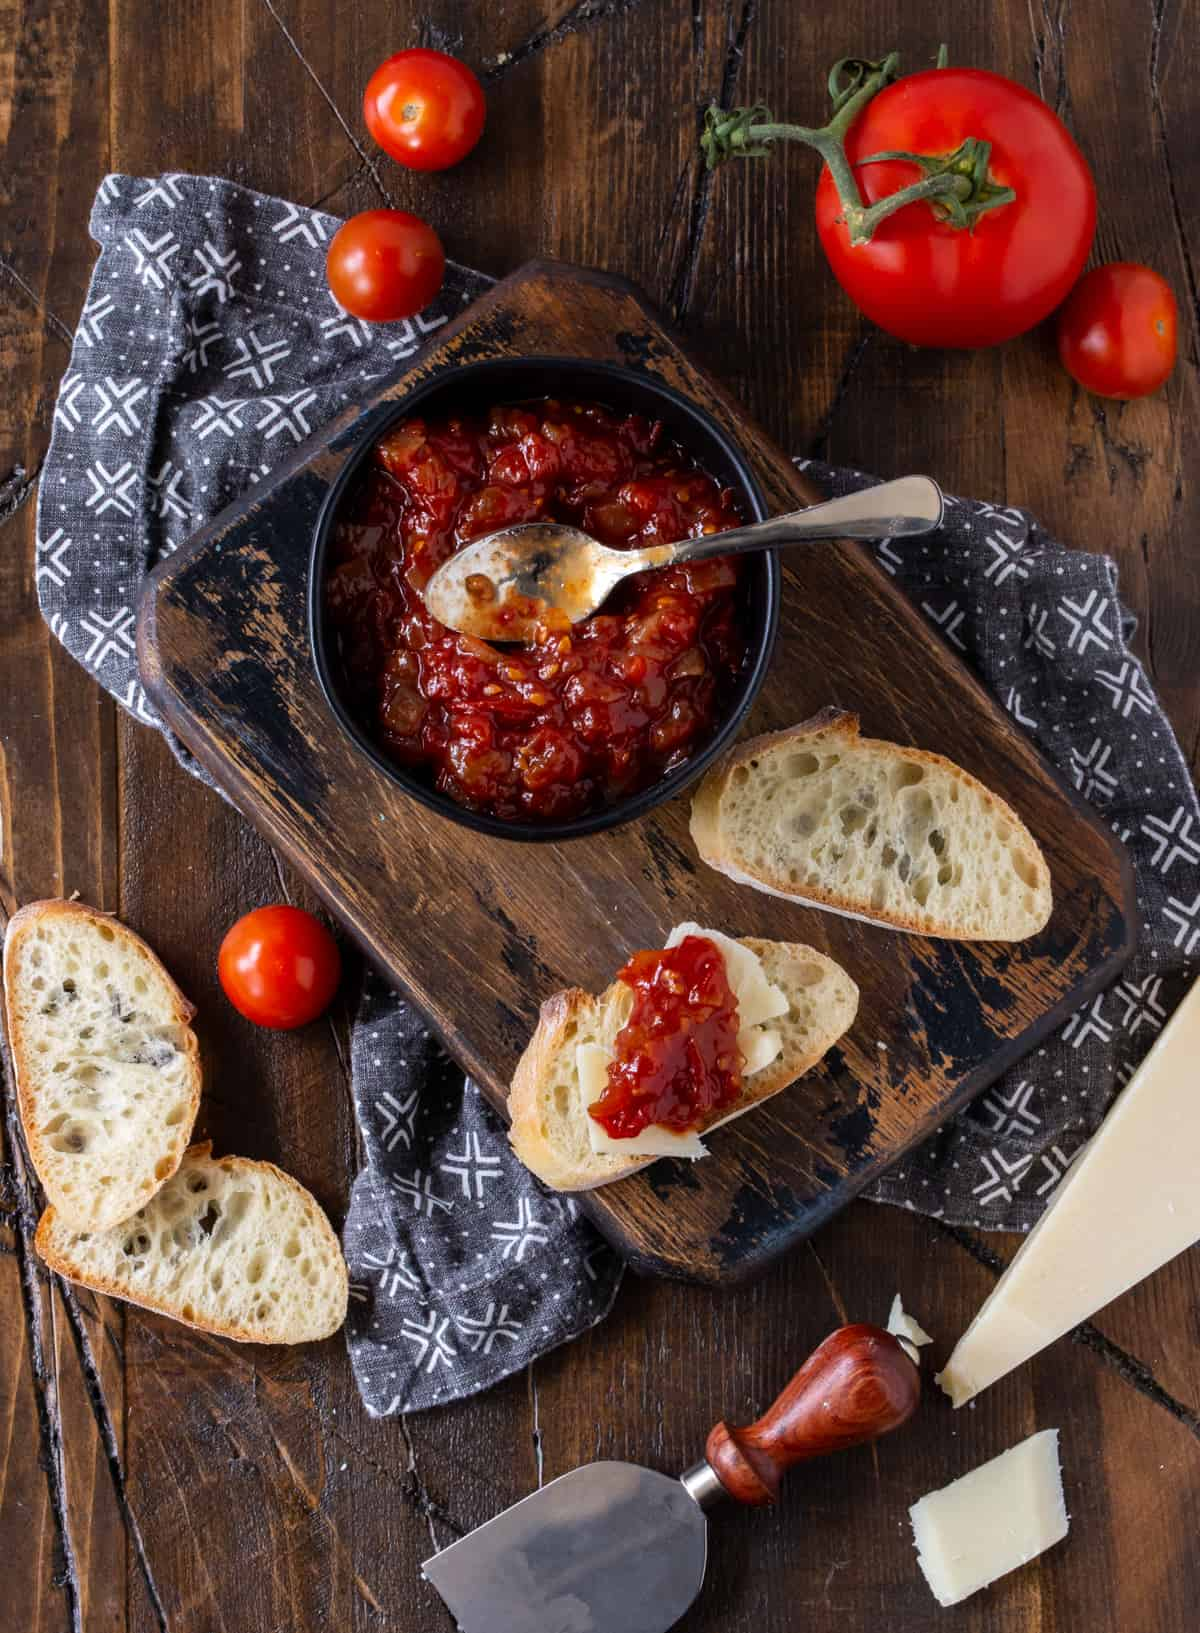 Baguette and cheese slices topped with Sweet and Tangy Tomato Jam recipe on a wooden cutting board.